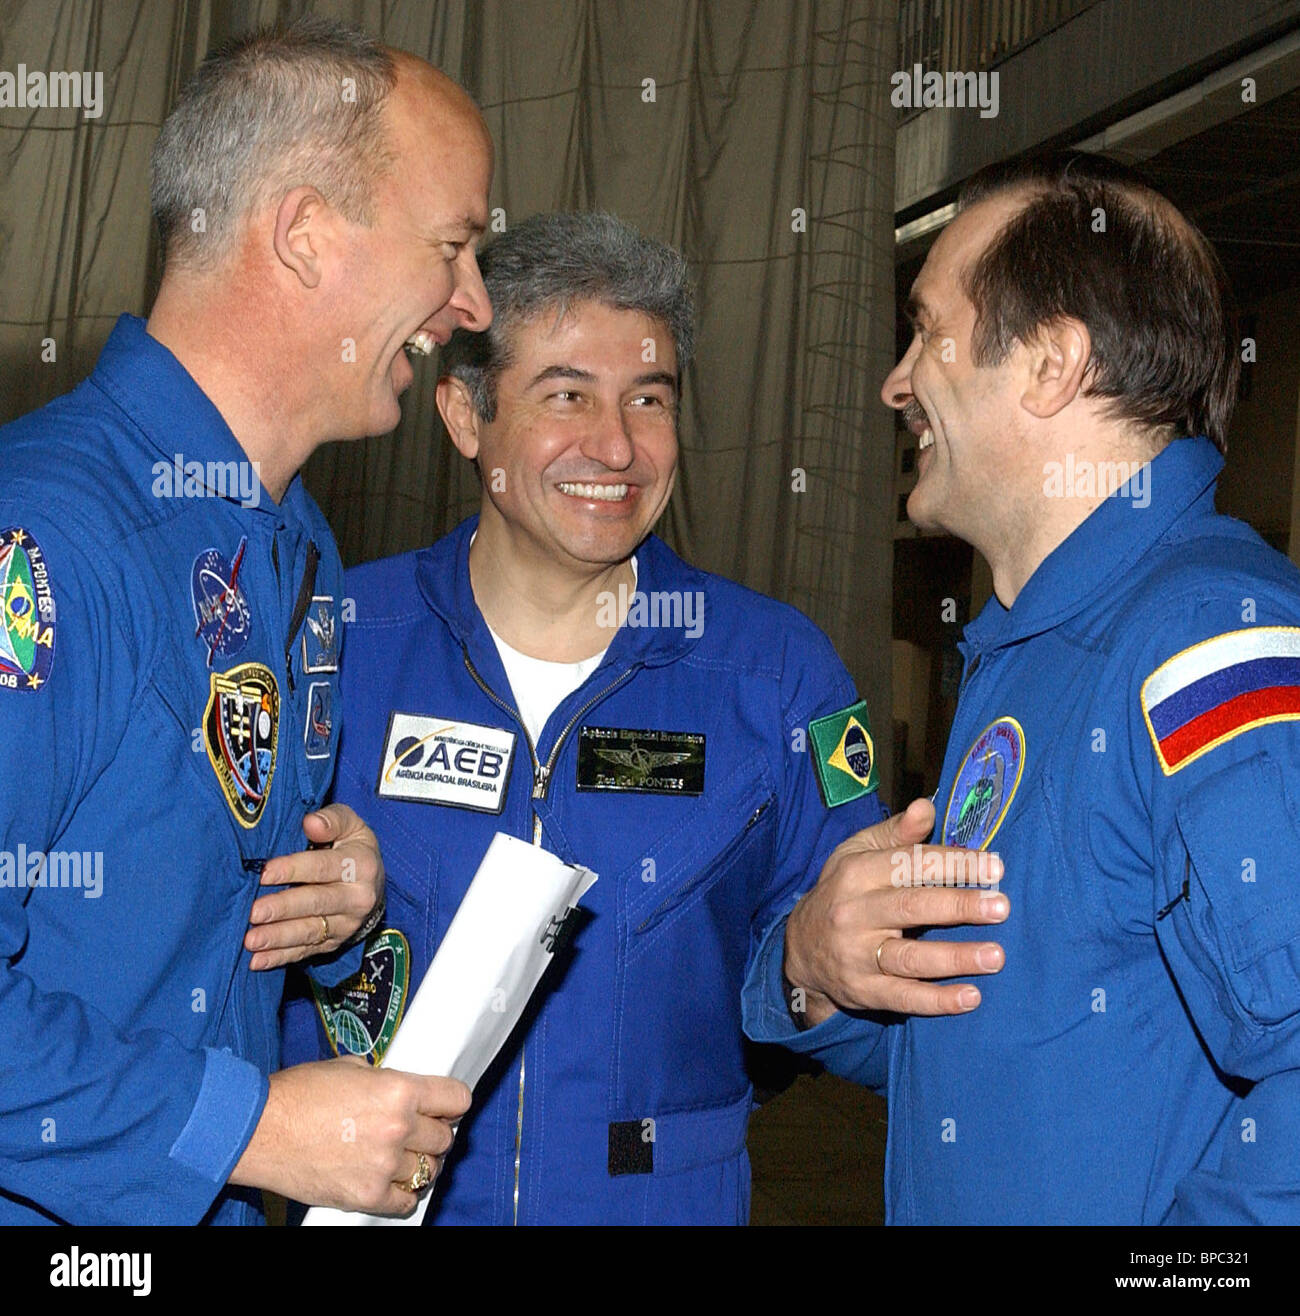 Crew of 13th shuttle mission to ISS to take preflight exams in Star City - Stock Image